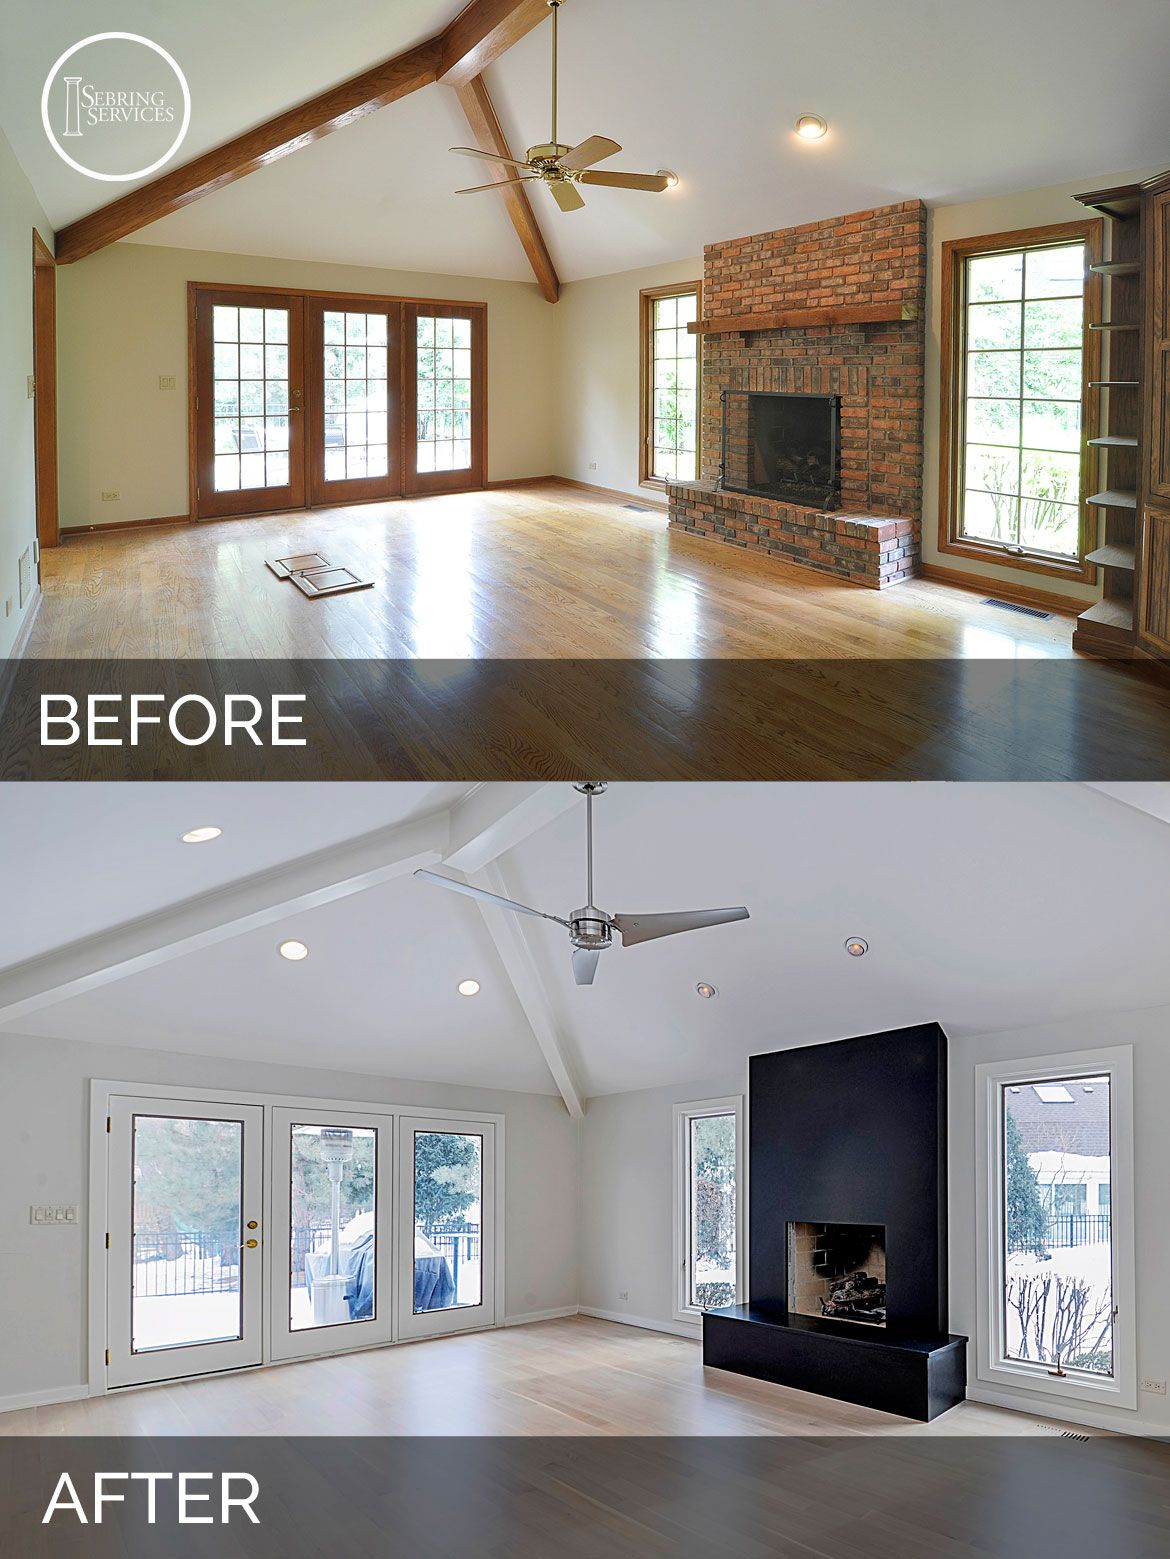 Before And After Kitchen Remodeling Sebring Services Home Design Pinterest Home